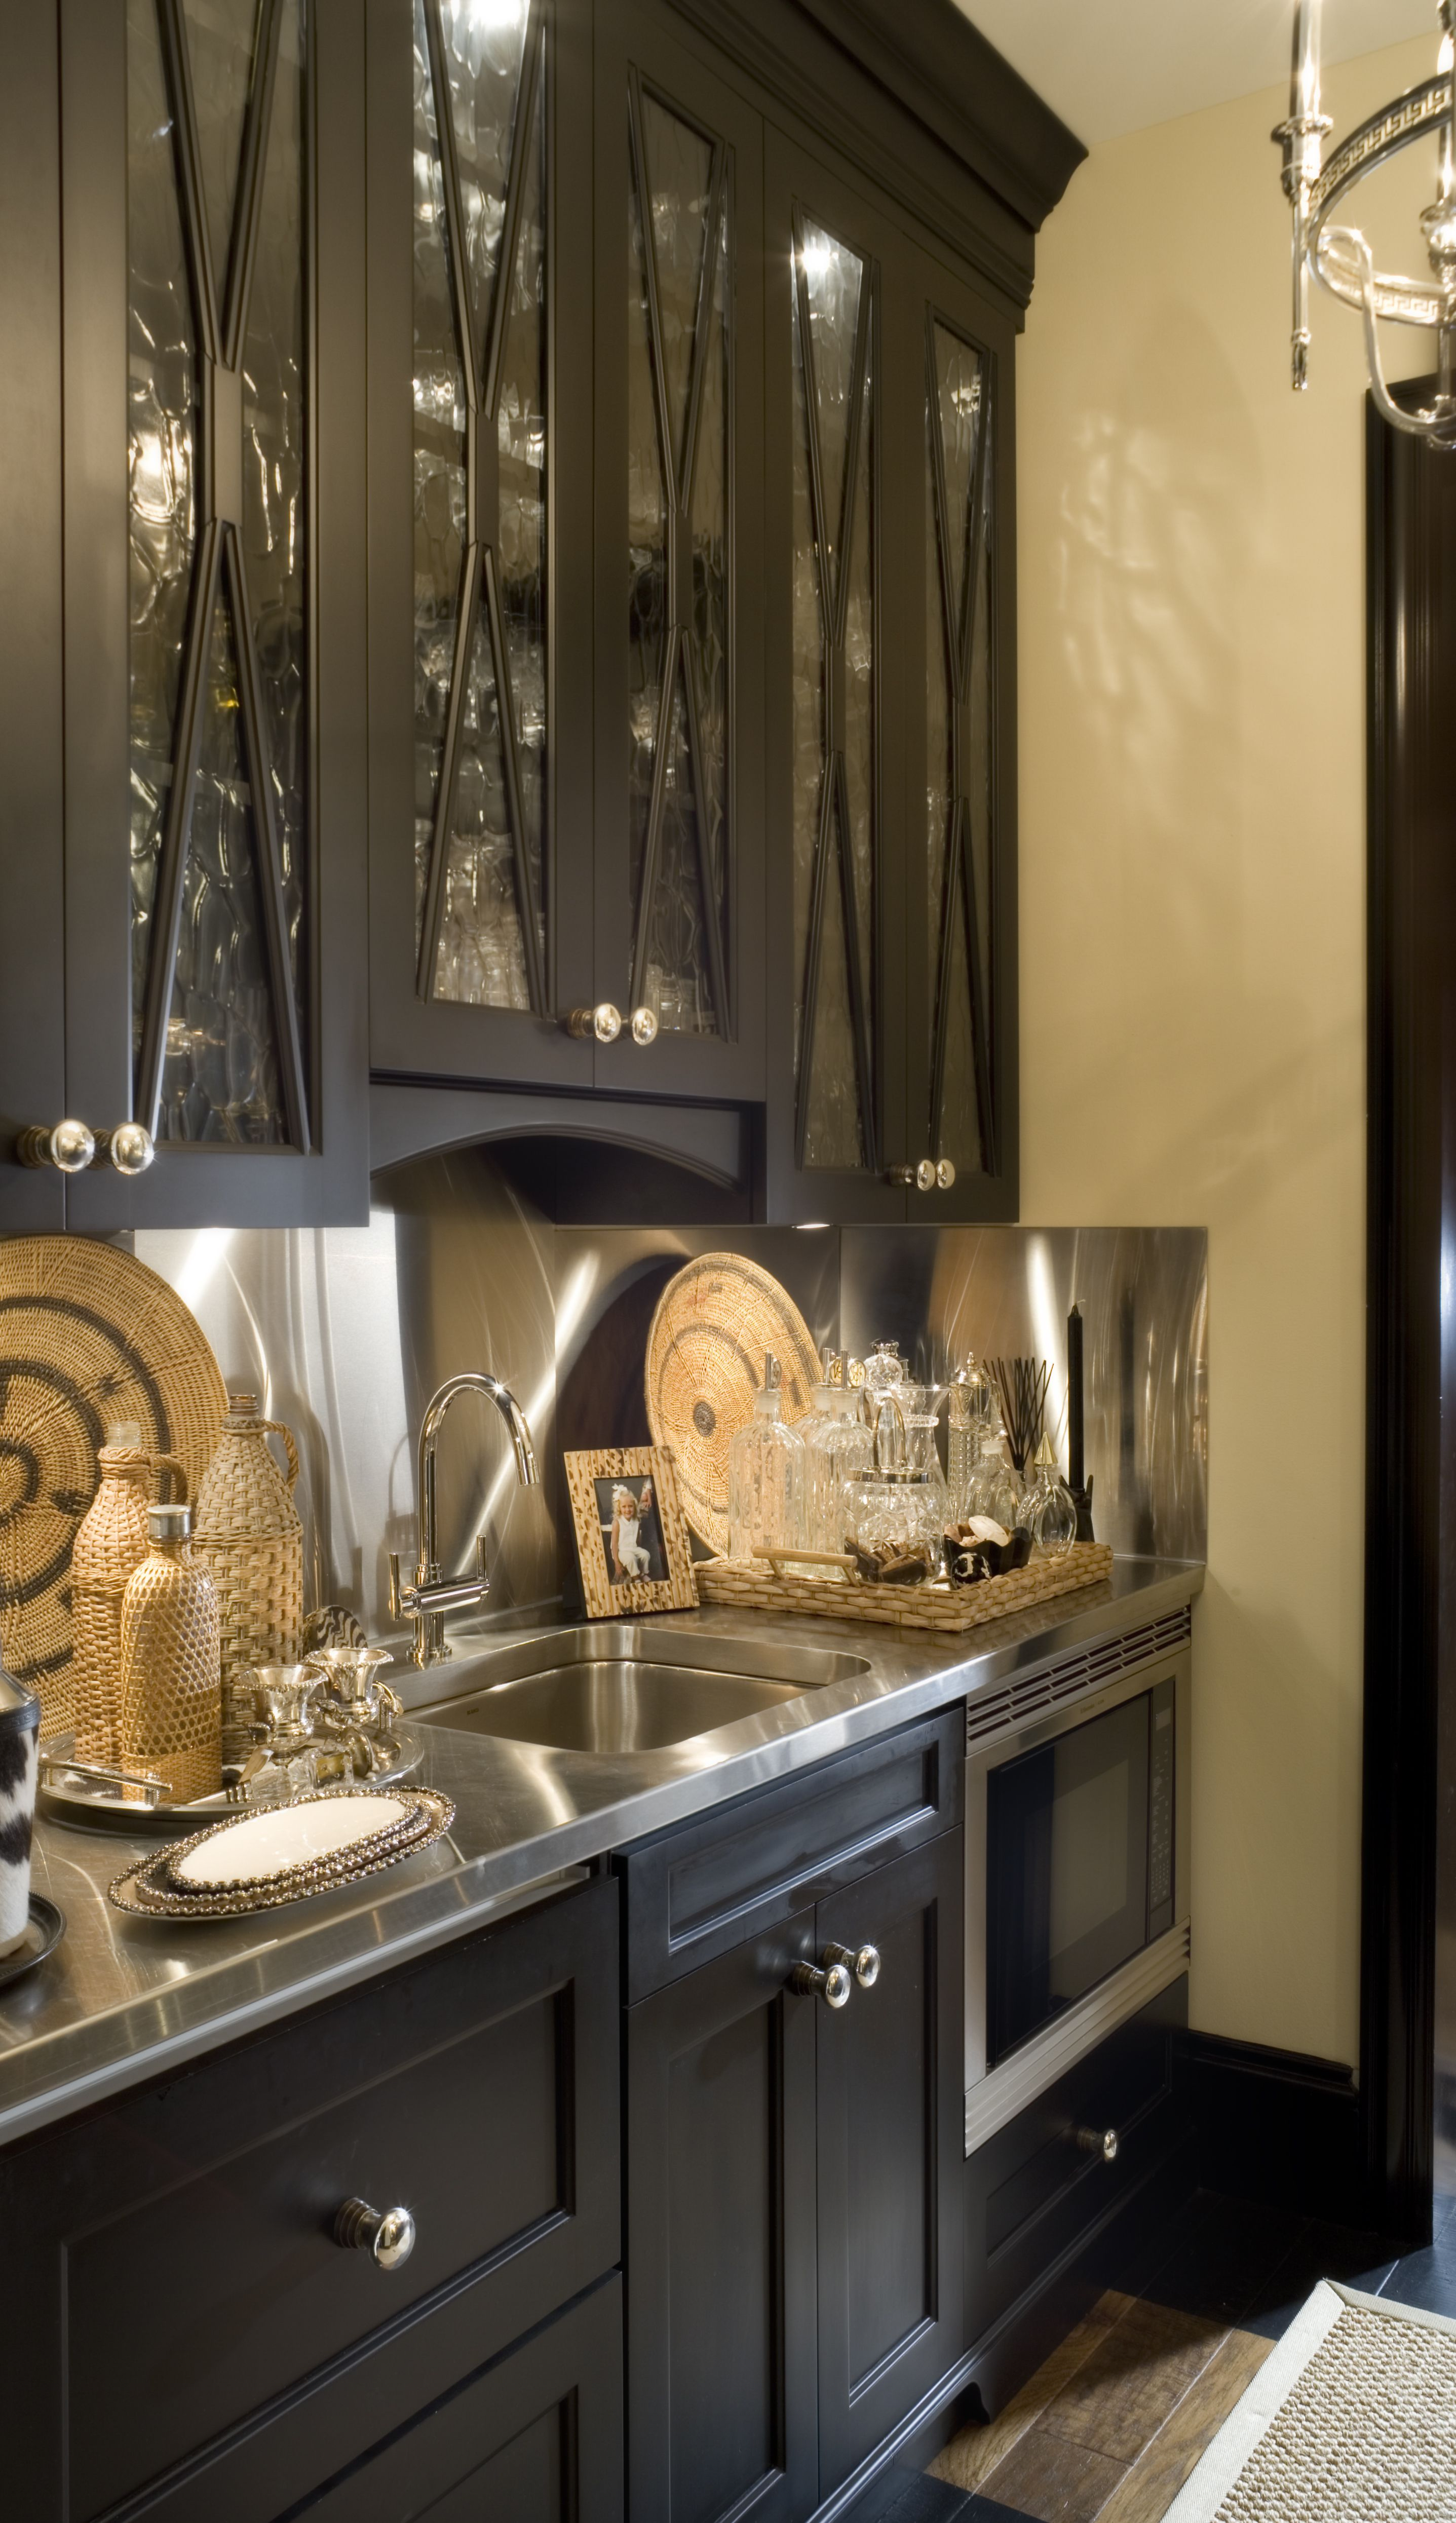 6 Ideas For Your Butler S Pantry Interior Design Kitchen